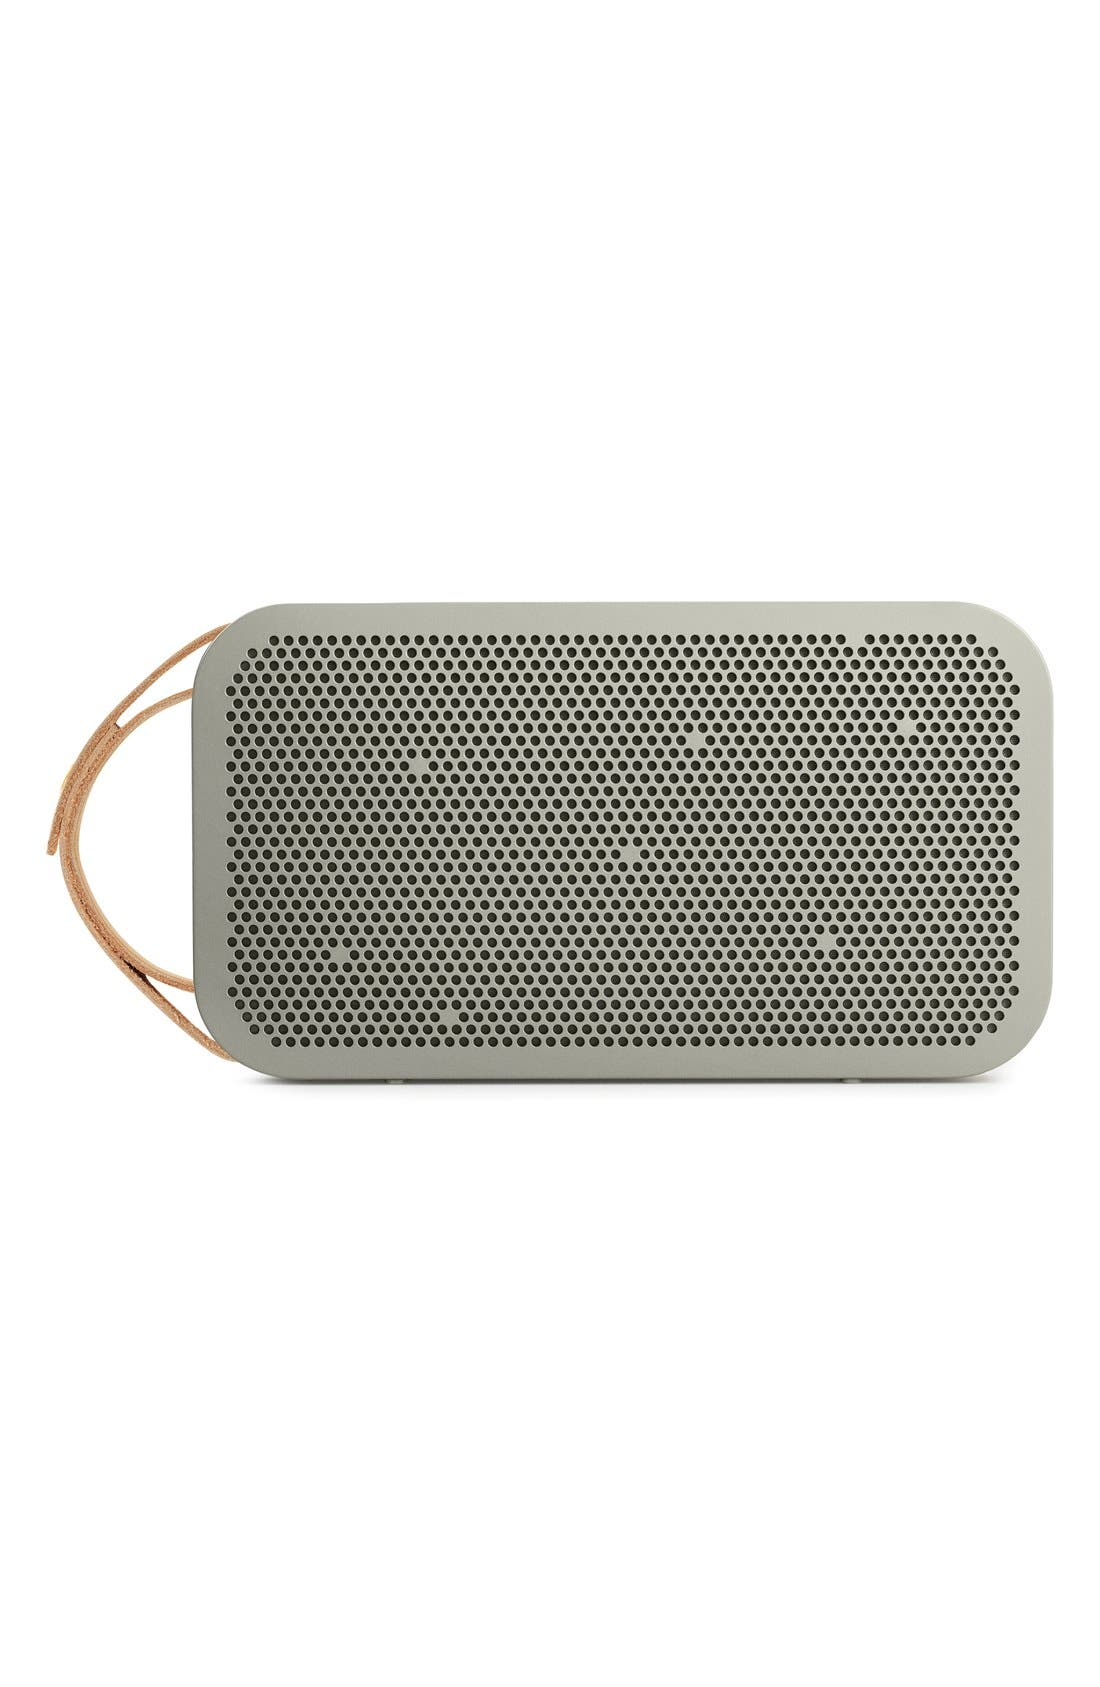 'A2' Portable Bluetooth<sup>®</sup> Speaker,                         Main,                         color, GREY